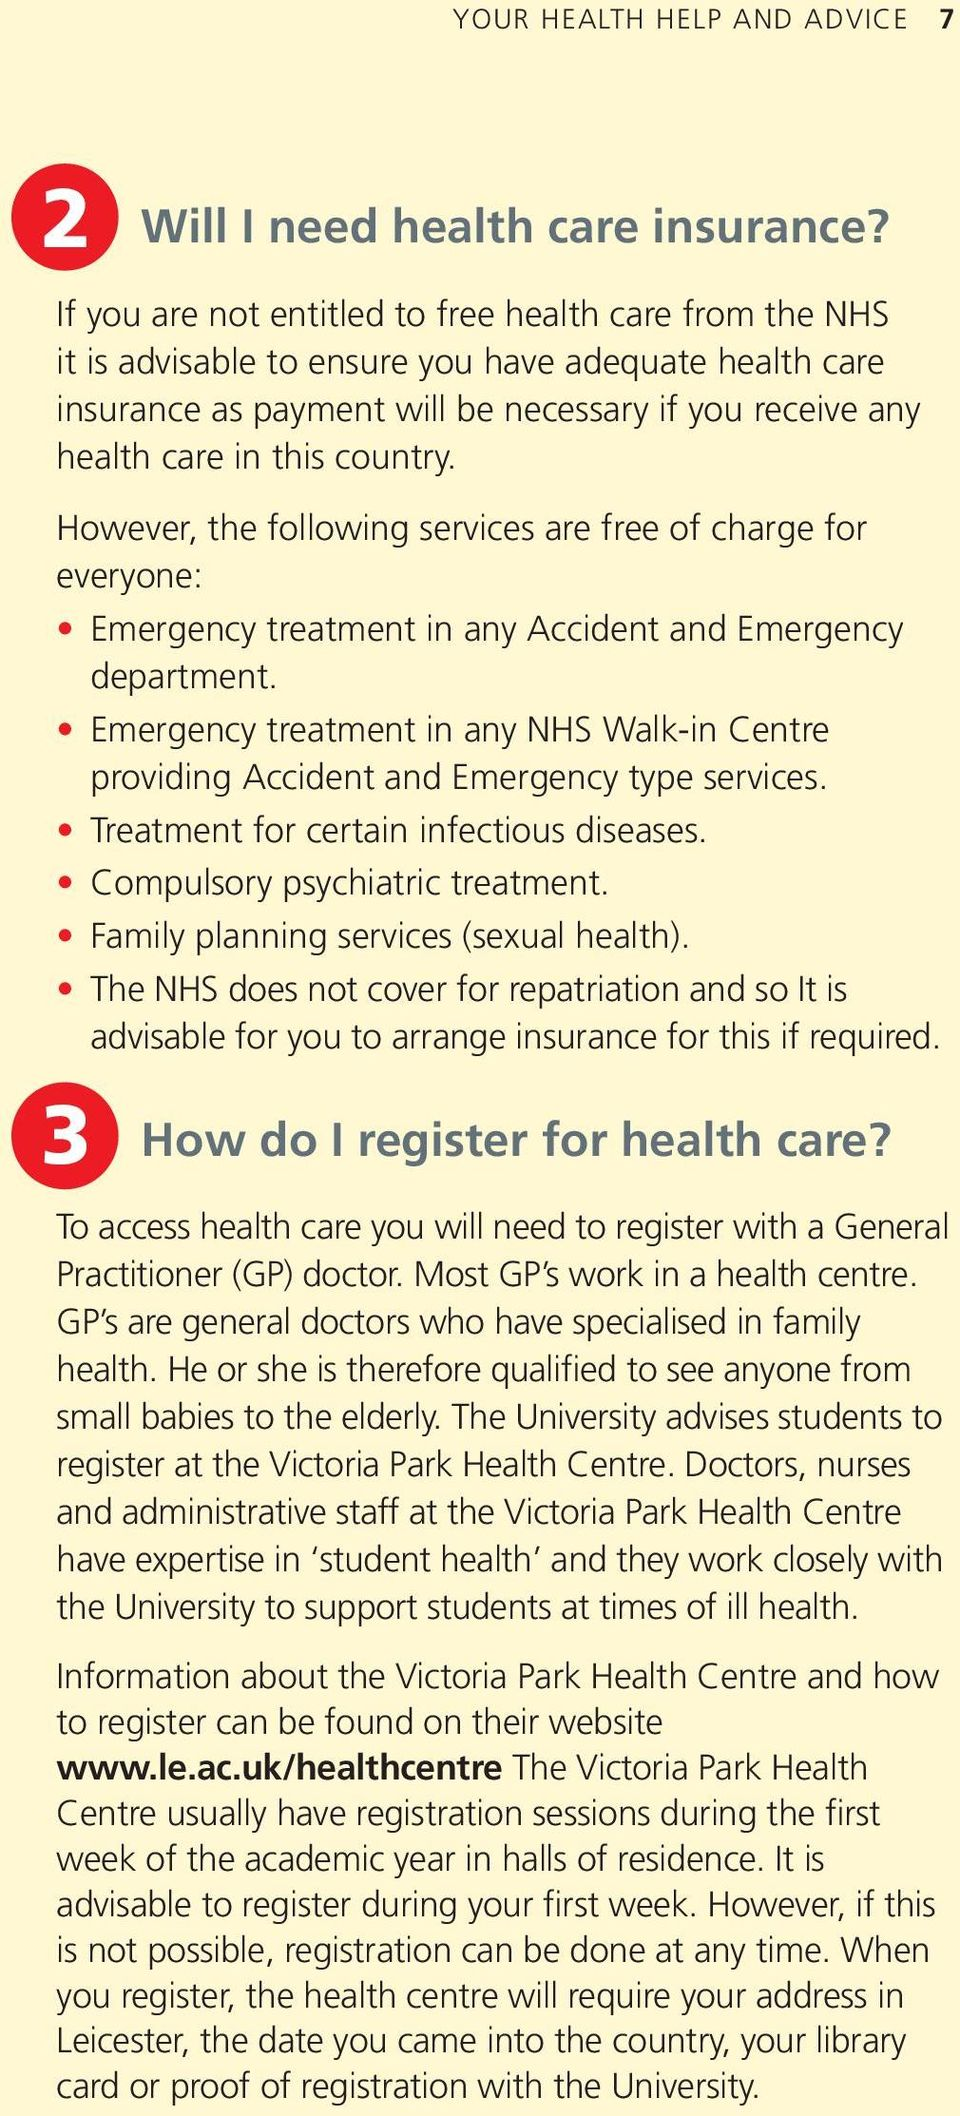 However, the following services are free of charge for everyone: Emergency treatment in any Accident and Emergency department.